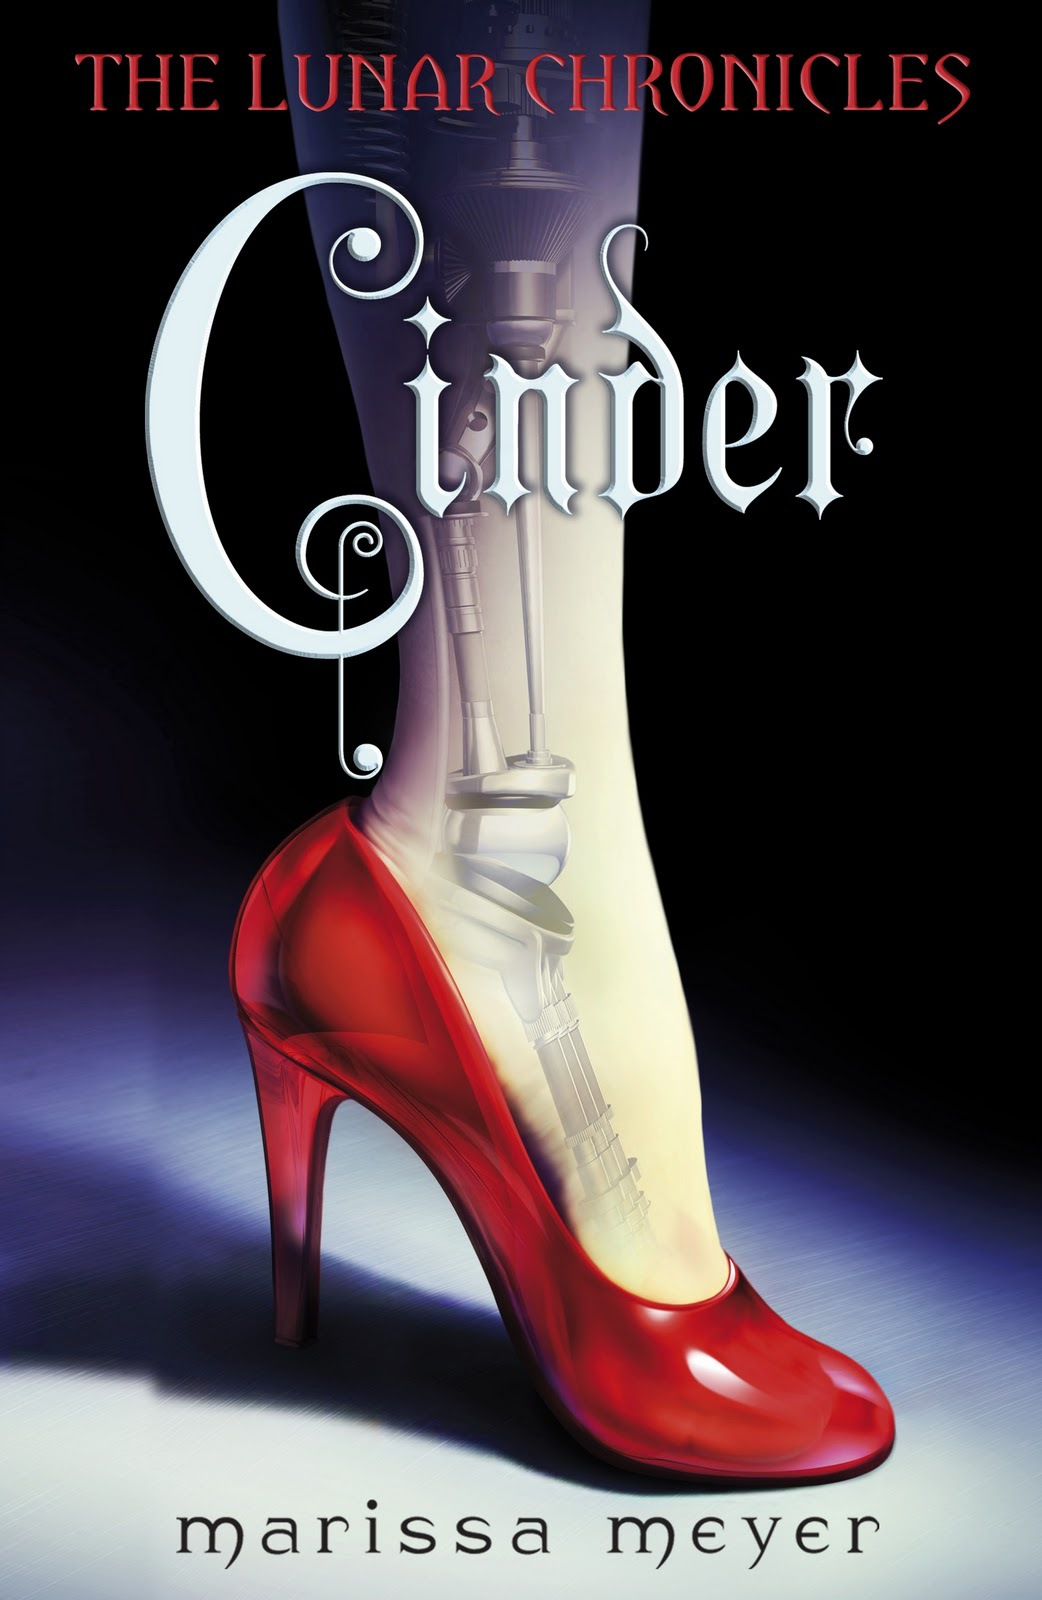 Cinder - The Lunar Chronicles #1 - Book Review